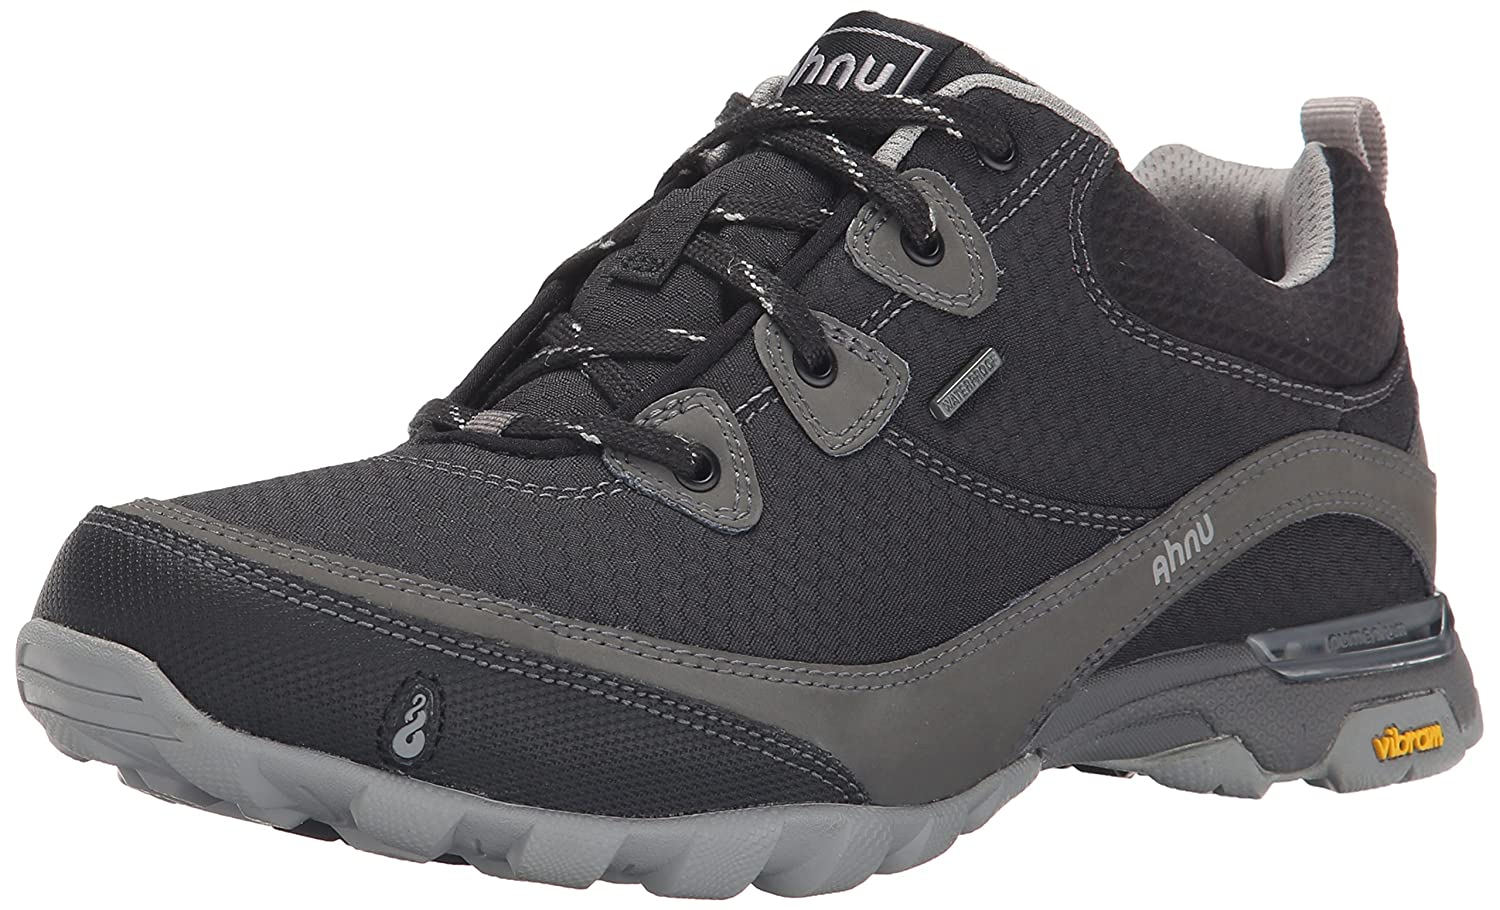 Ahnu Women's Sugarpine Waterproof Hiking Shoe B00RWRTJZQ 5 B(M) US|New Black